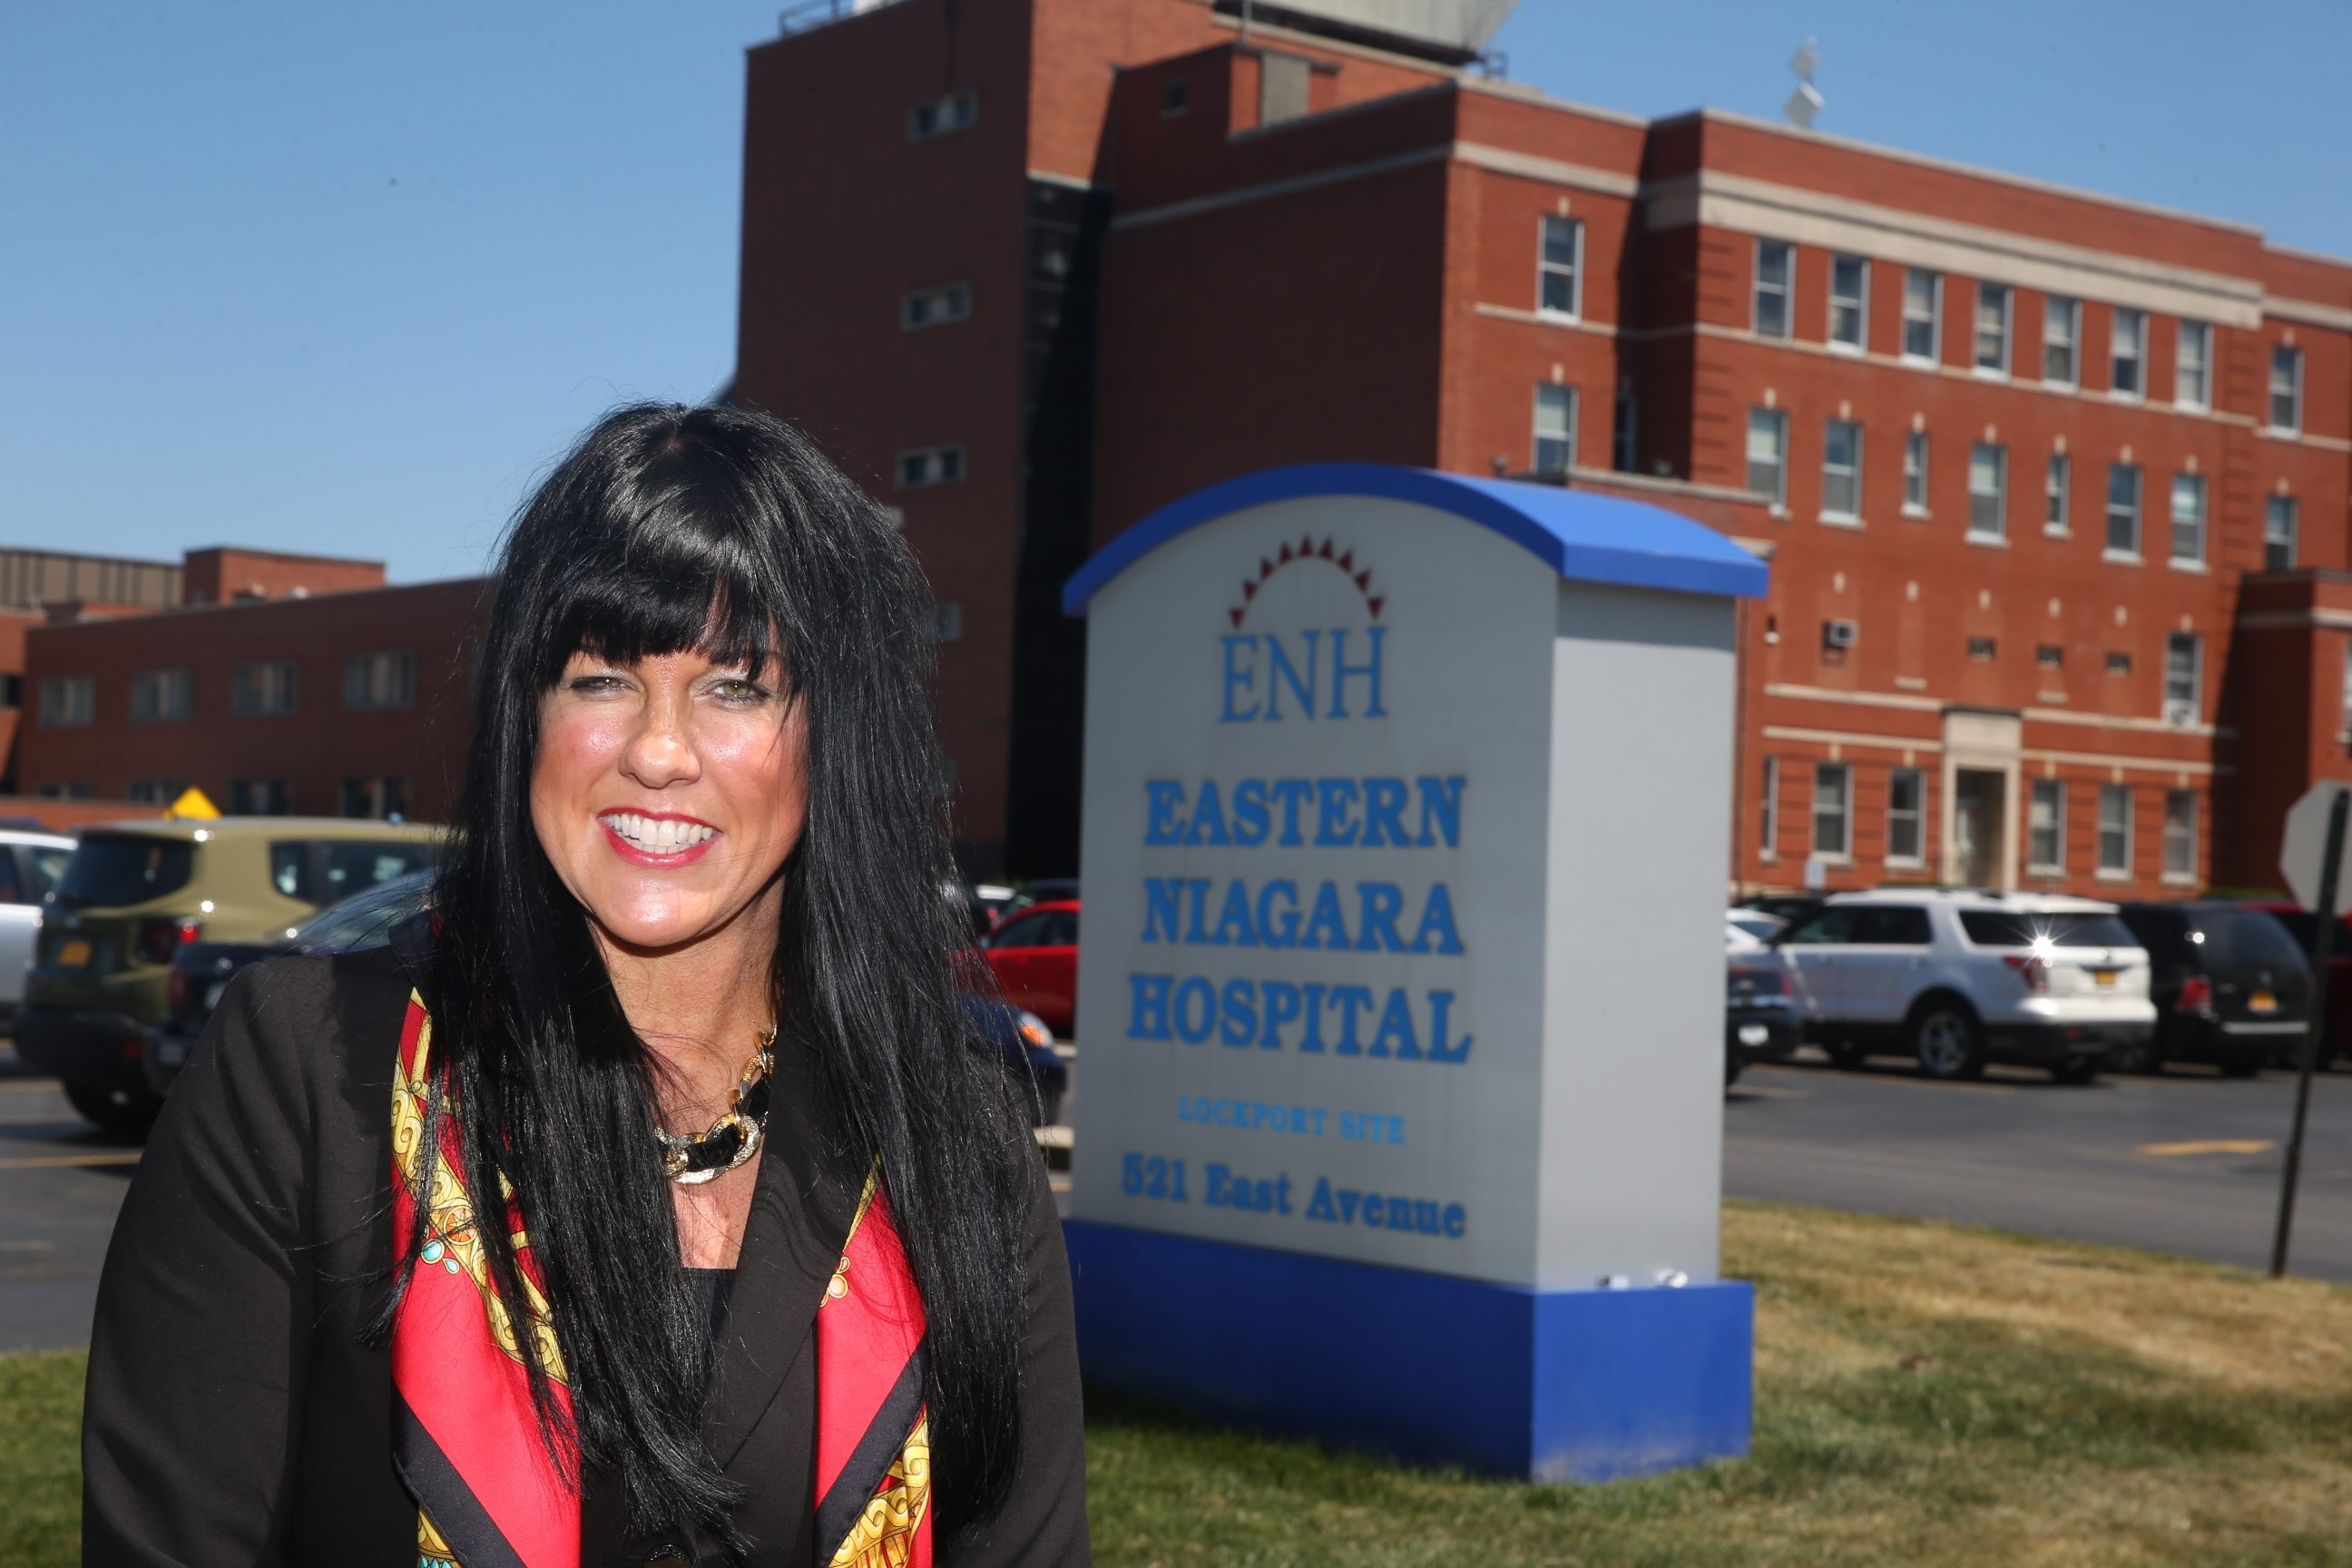 Melisa Niver, above, who resigned in May from the Eastern Niagara Hospital board of directors, criticizes the hospital's CEO Clare A. Haar over patient satisfaction survey responses, but Haar says the results are in line with national averages.